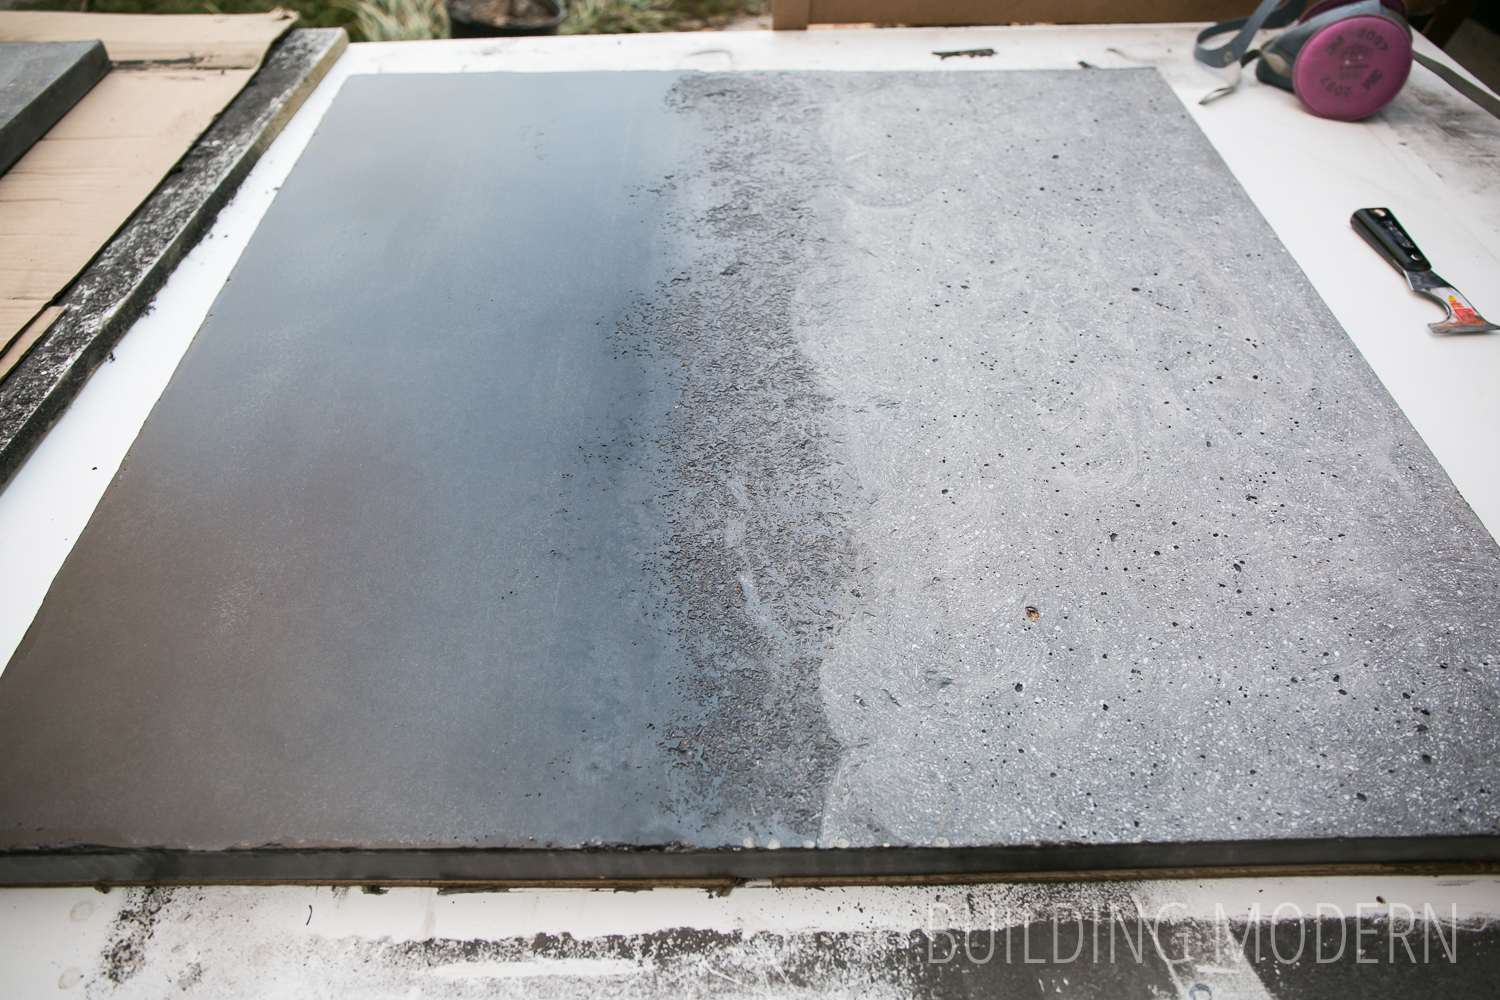 Finished Concrete Countertops Building Modern A Modern Diy Renovation Blog